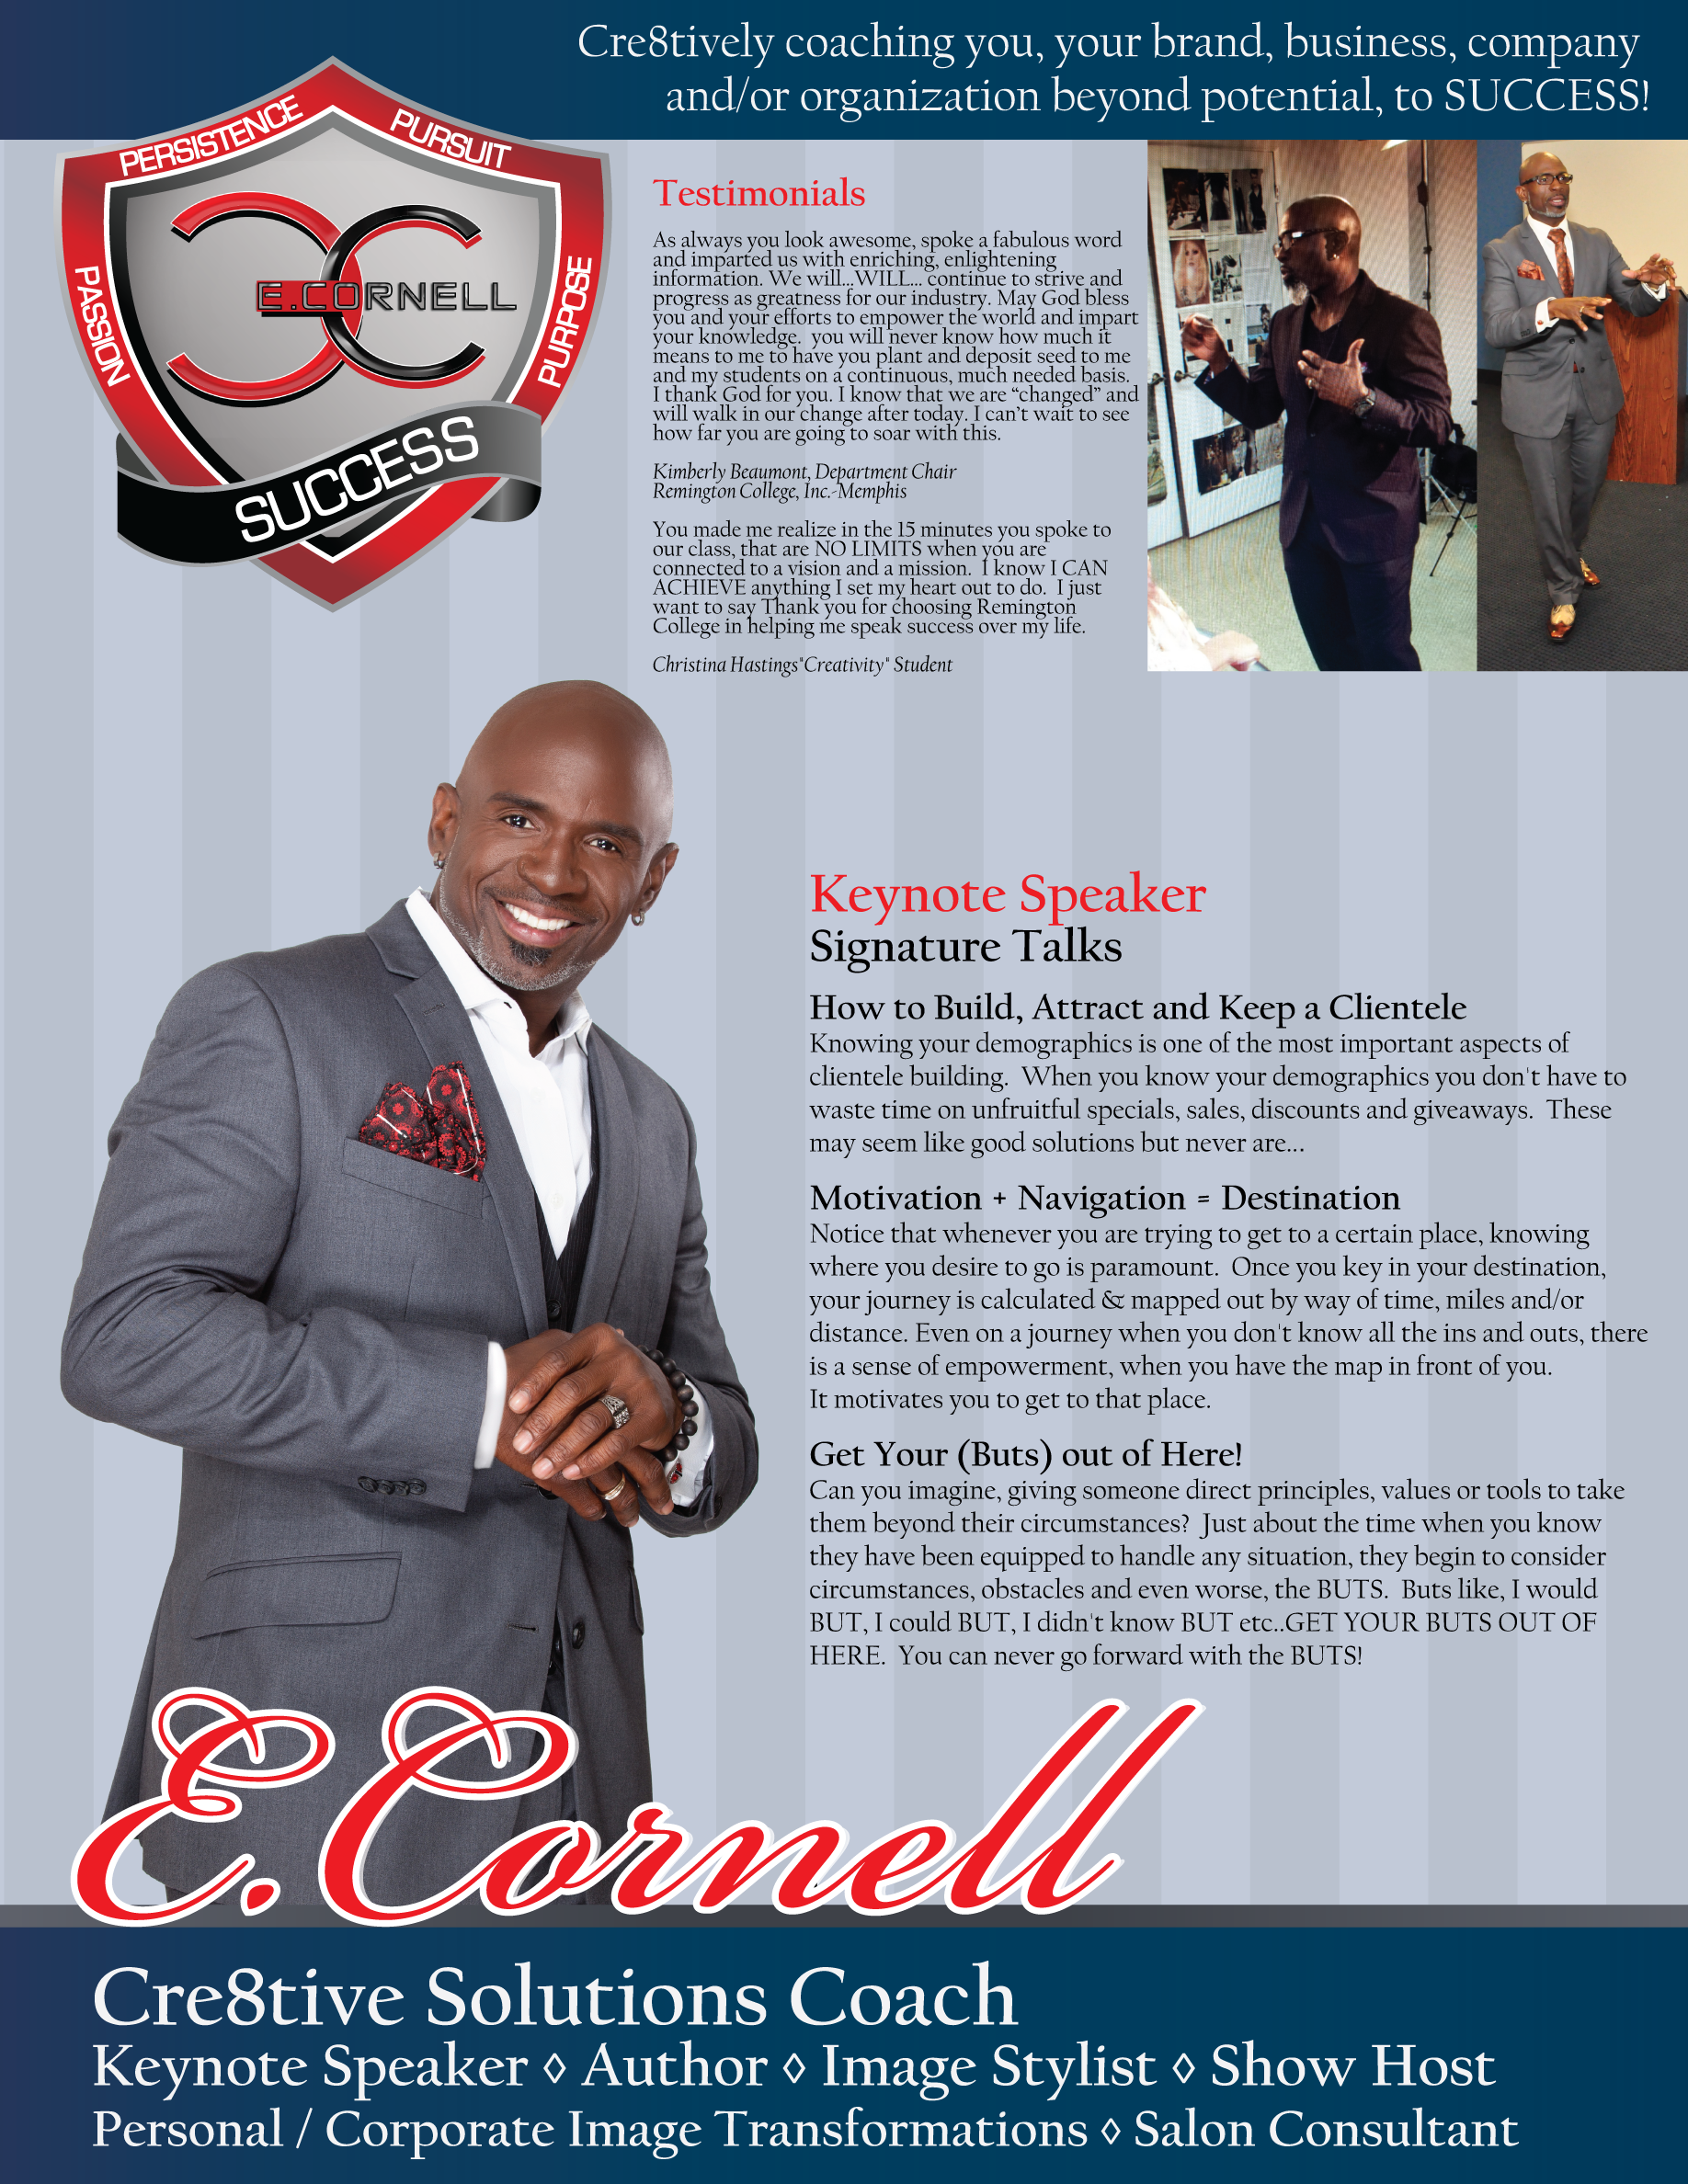 E. Cornell Media Kit/Speaker Sheets